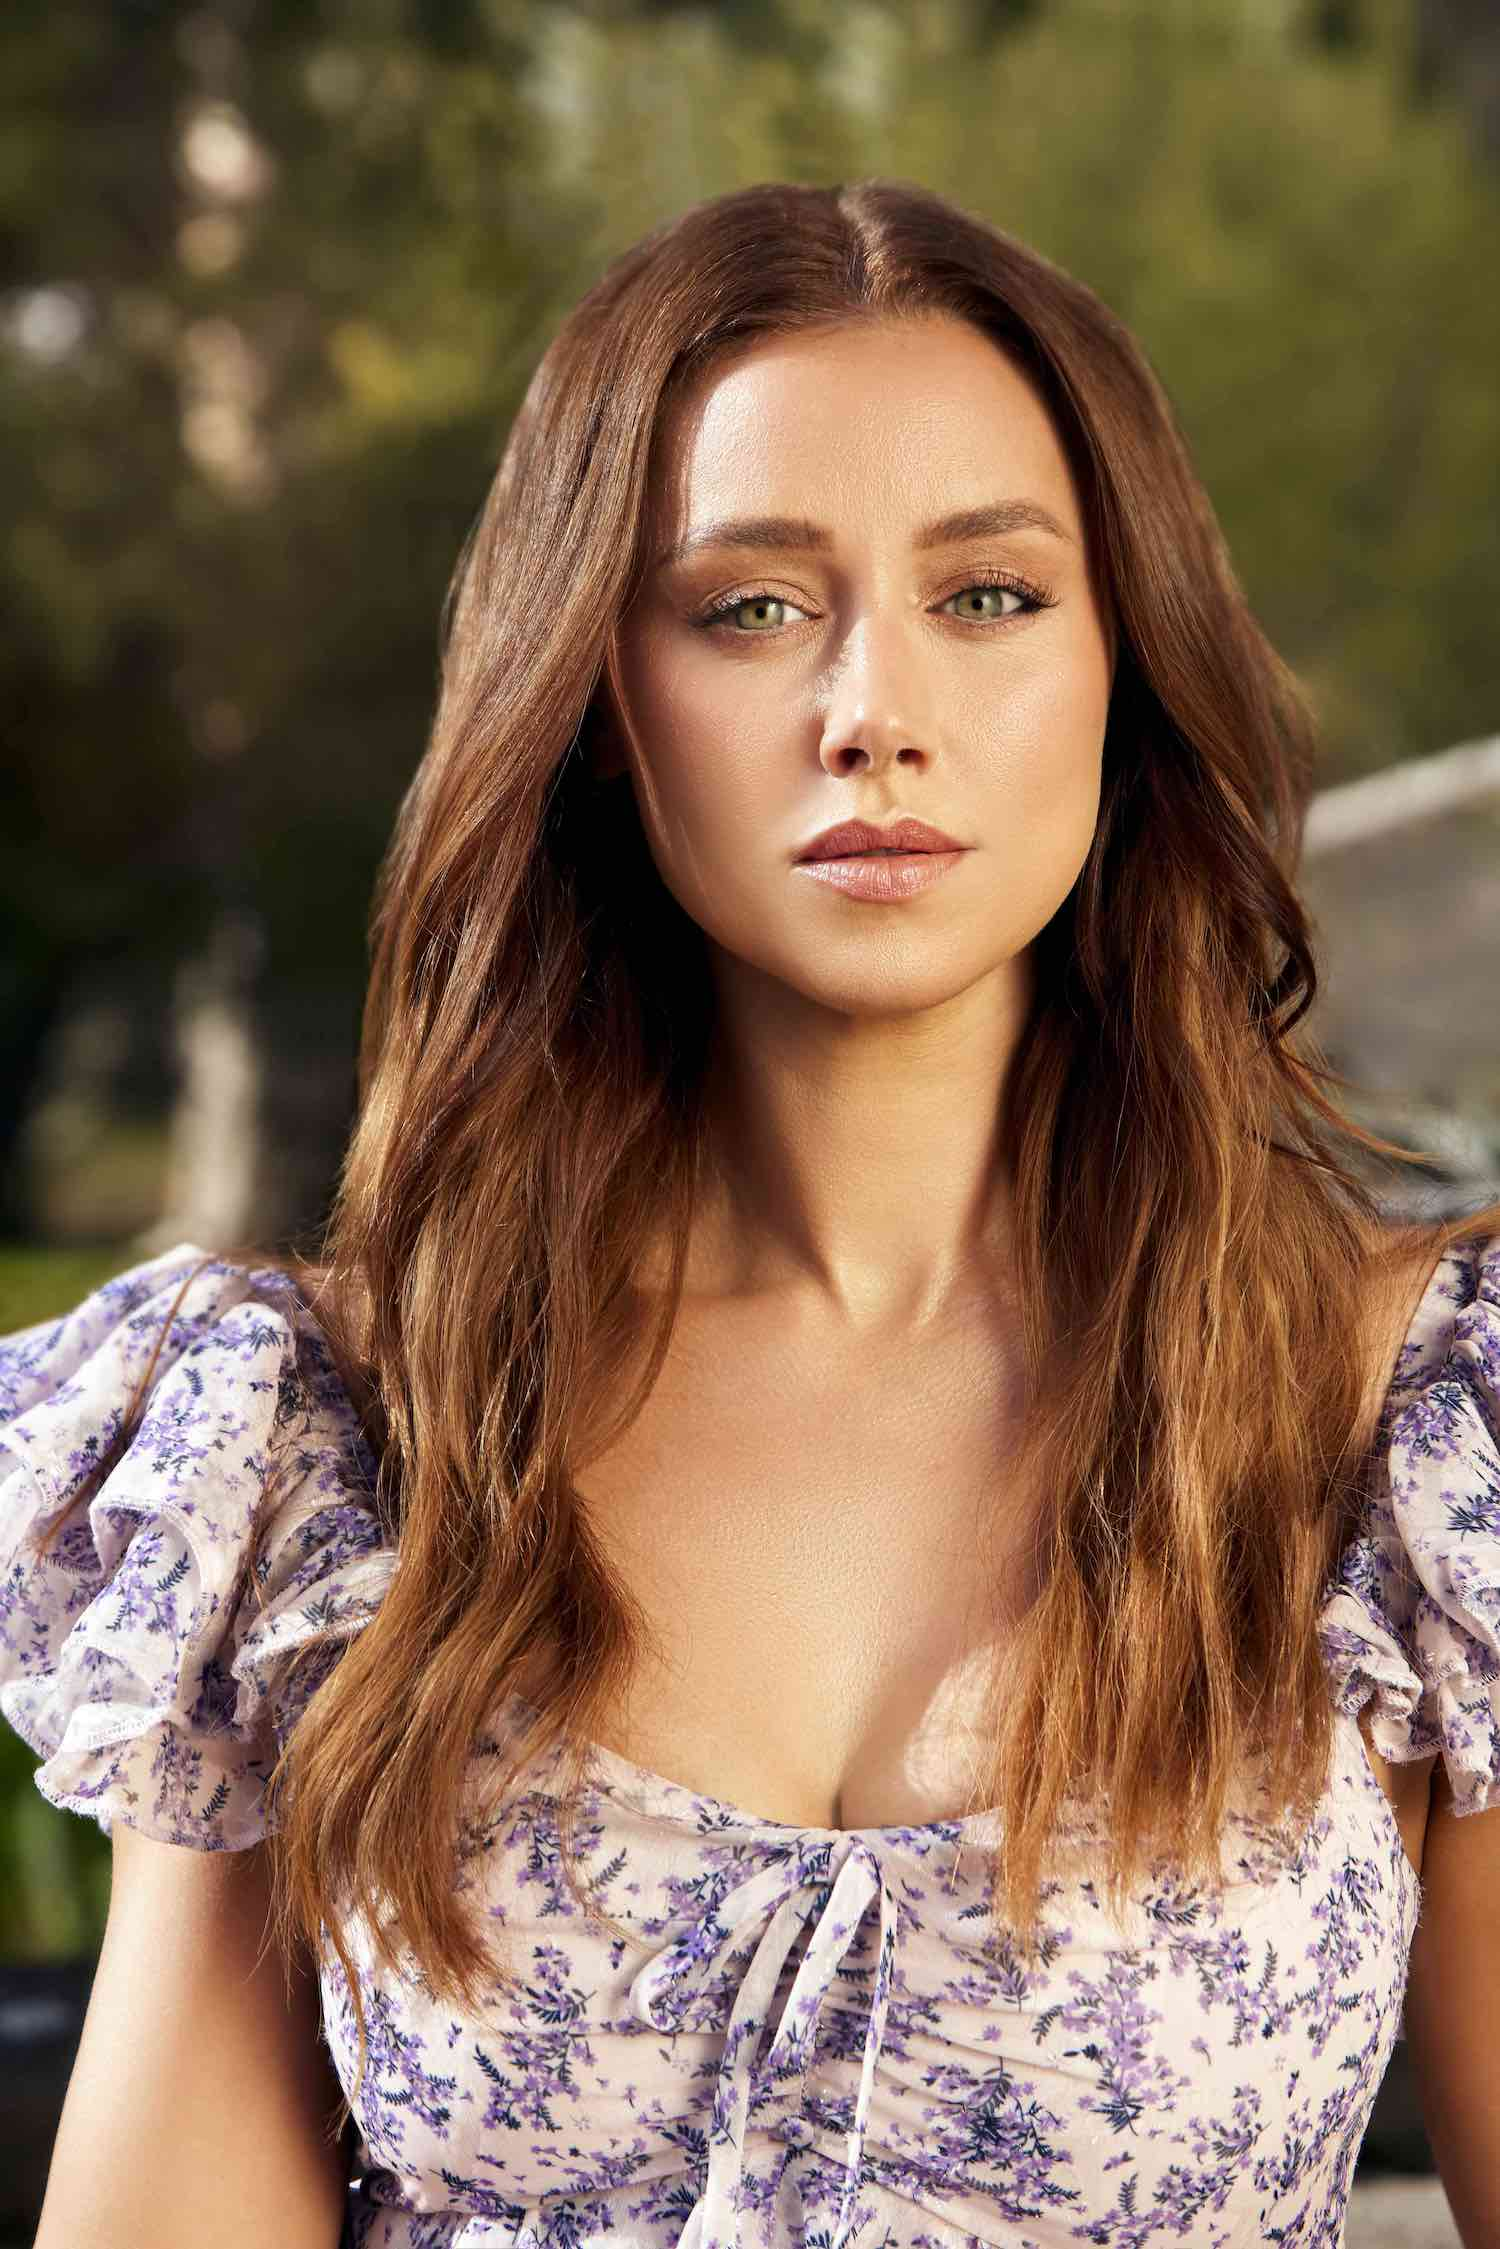 Una Healy announced as first Irish face of International Beauty Brand